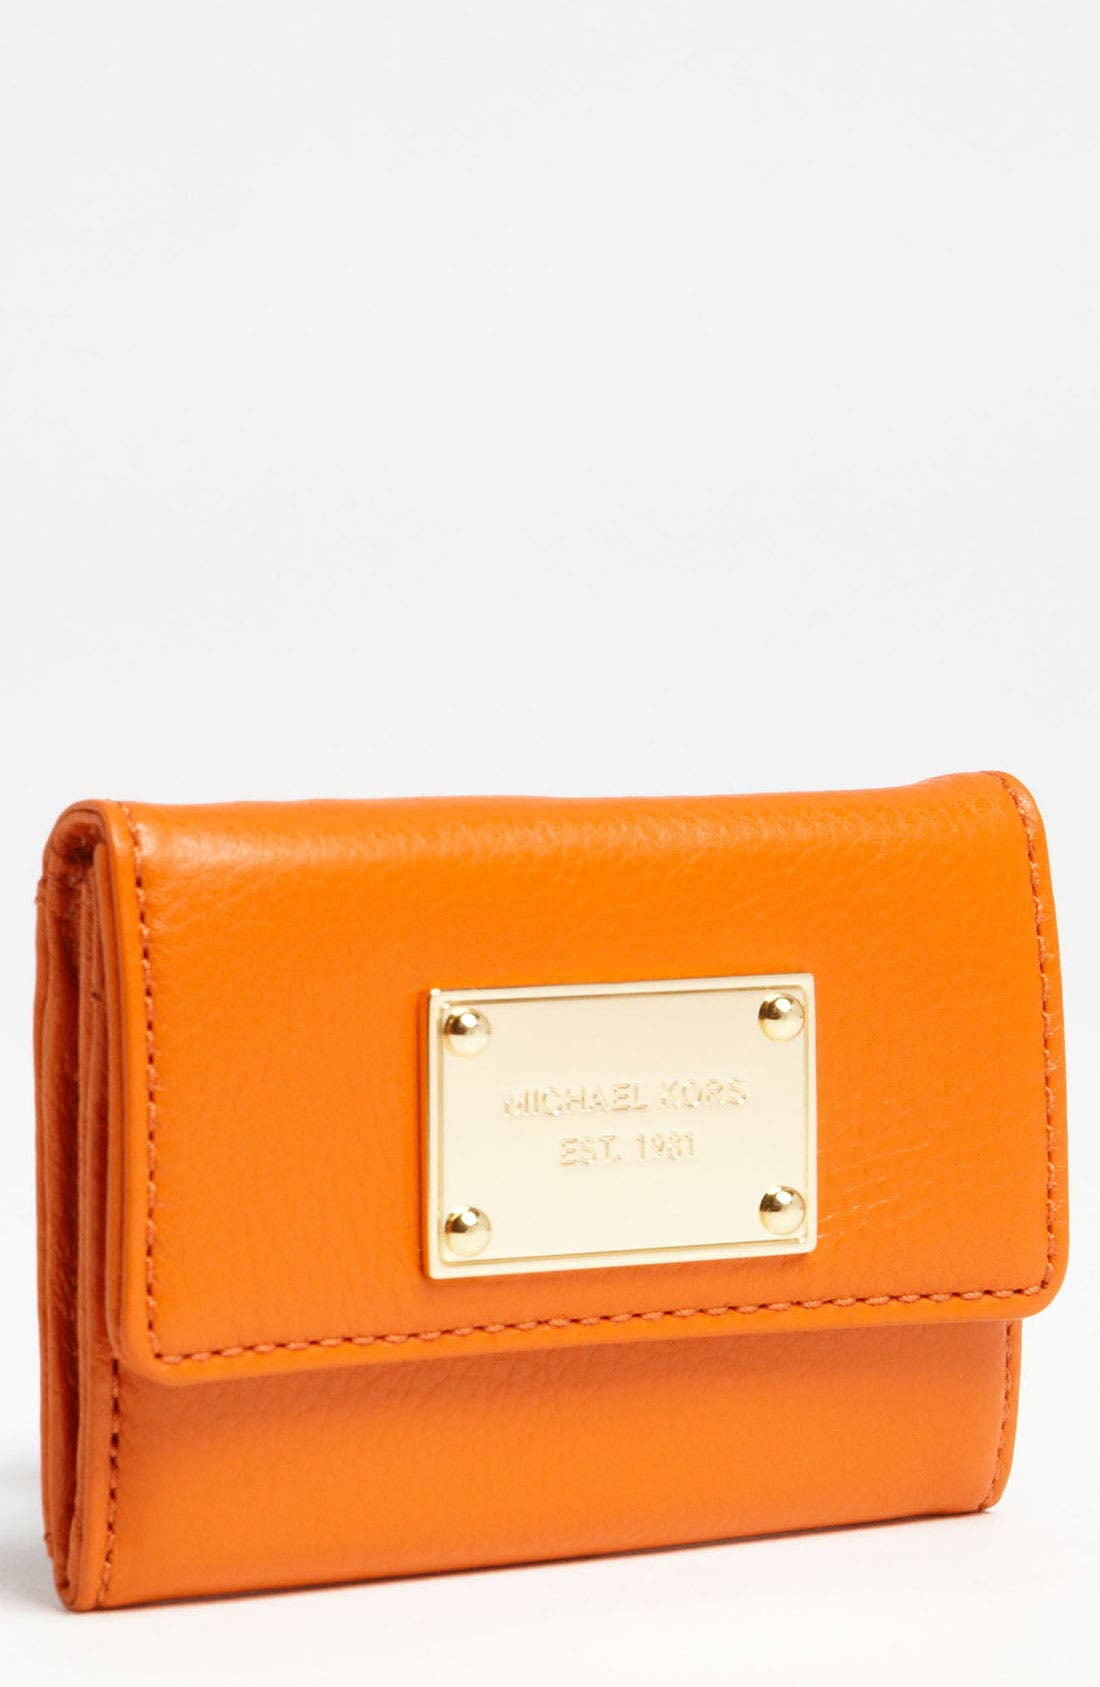 Alternate Image 1 Selected - MICHAEL Michael Kors 'Jet Set' Leather Wallet